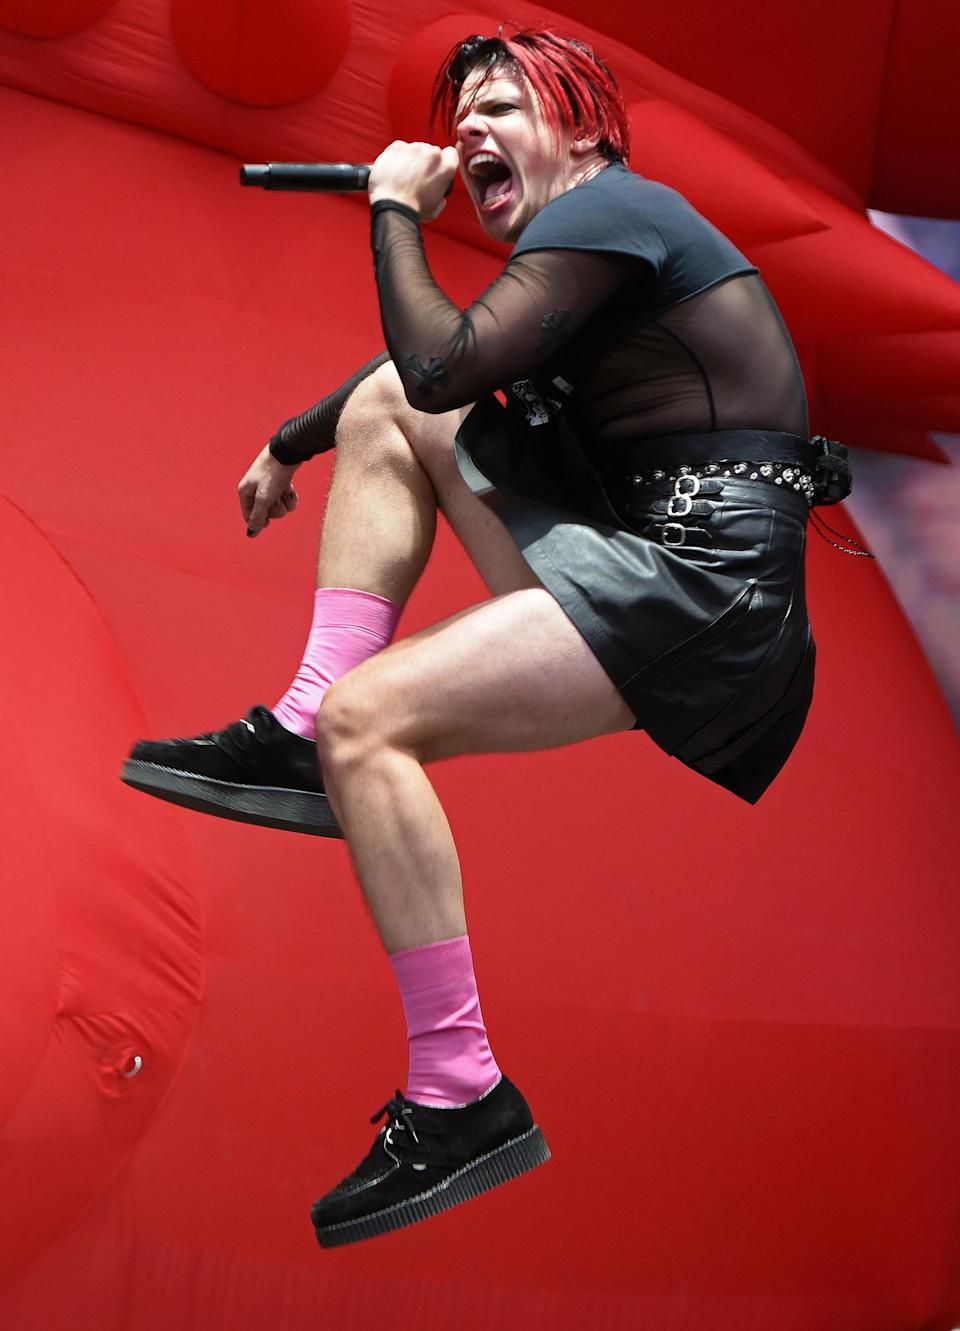 <p>Yungblud reaches for the sky during day one of the Leeds Festival at Bramham Park in England on Aug. 27.</p>